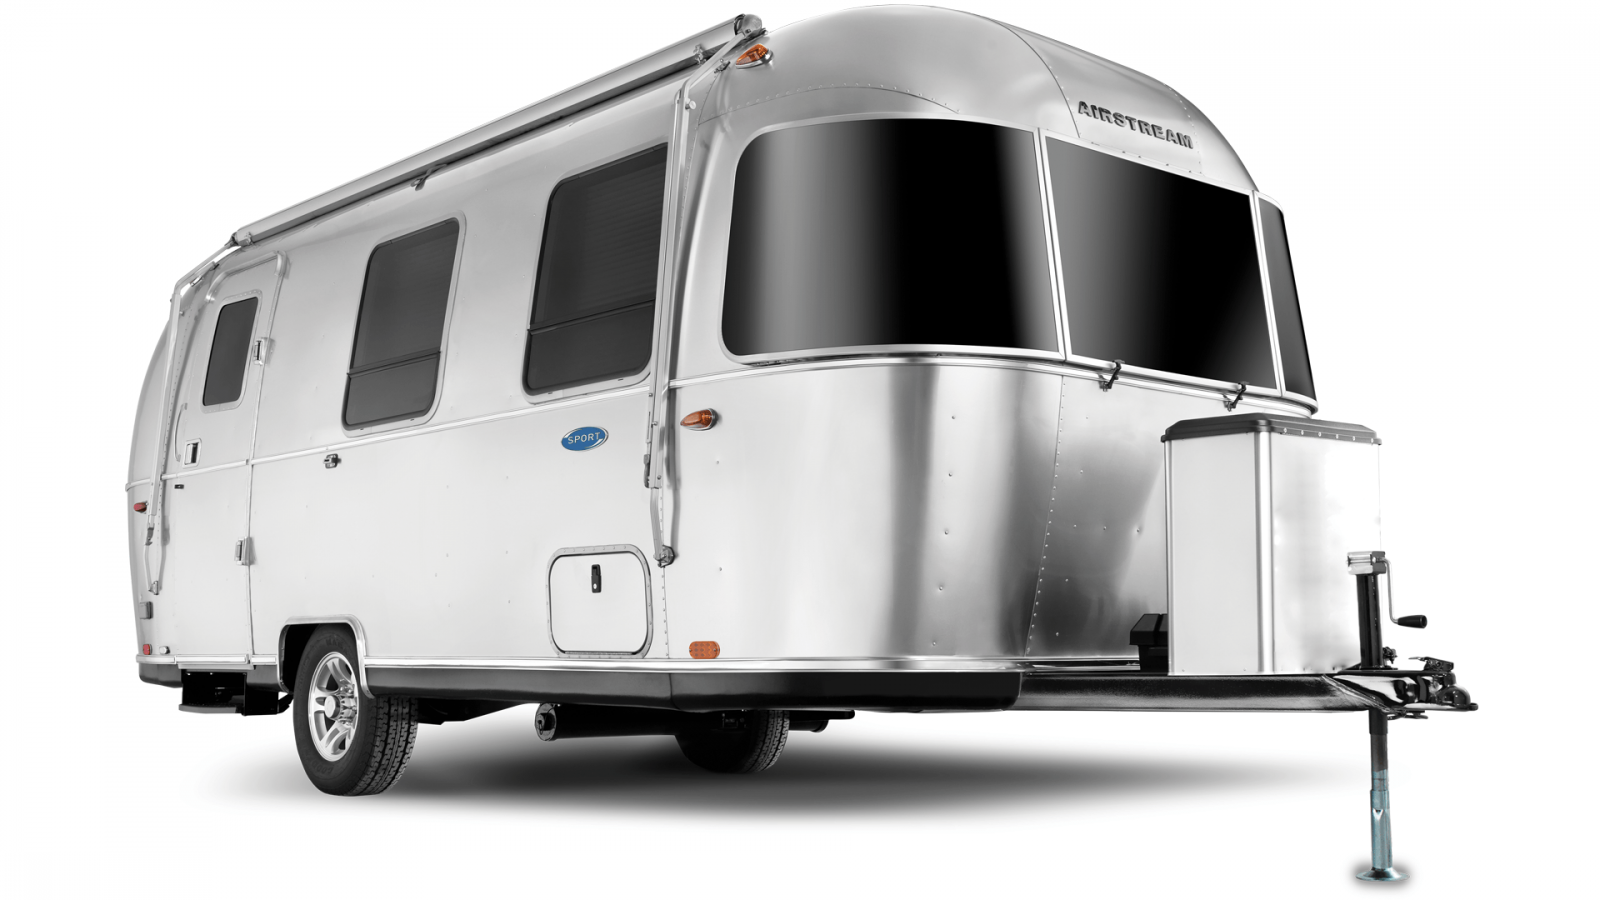 ... Travel Trailer is perfectly equipped for weekends spent exploring. At  the end of each day, you'll love returning to your Sport to relax,  recharge, ...